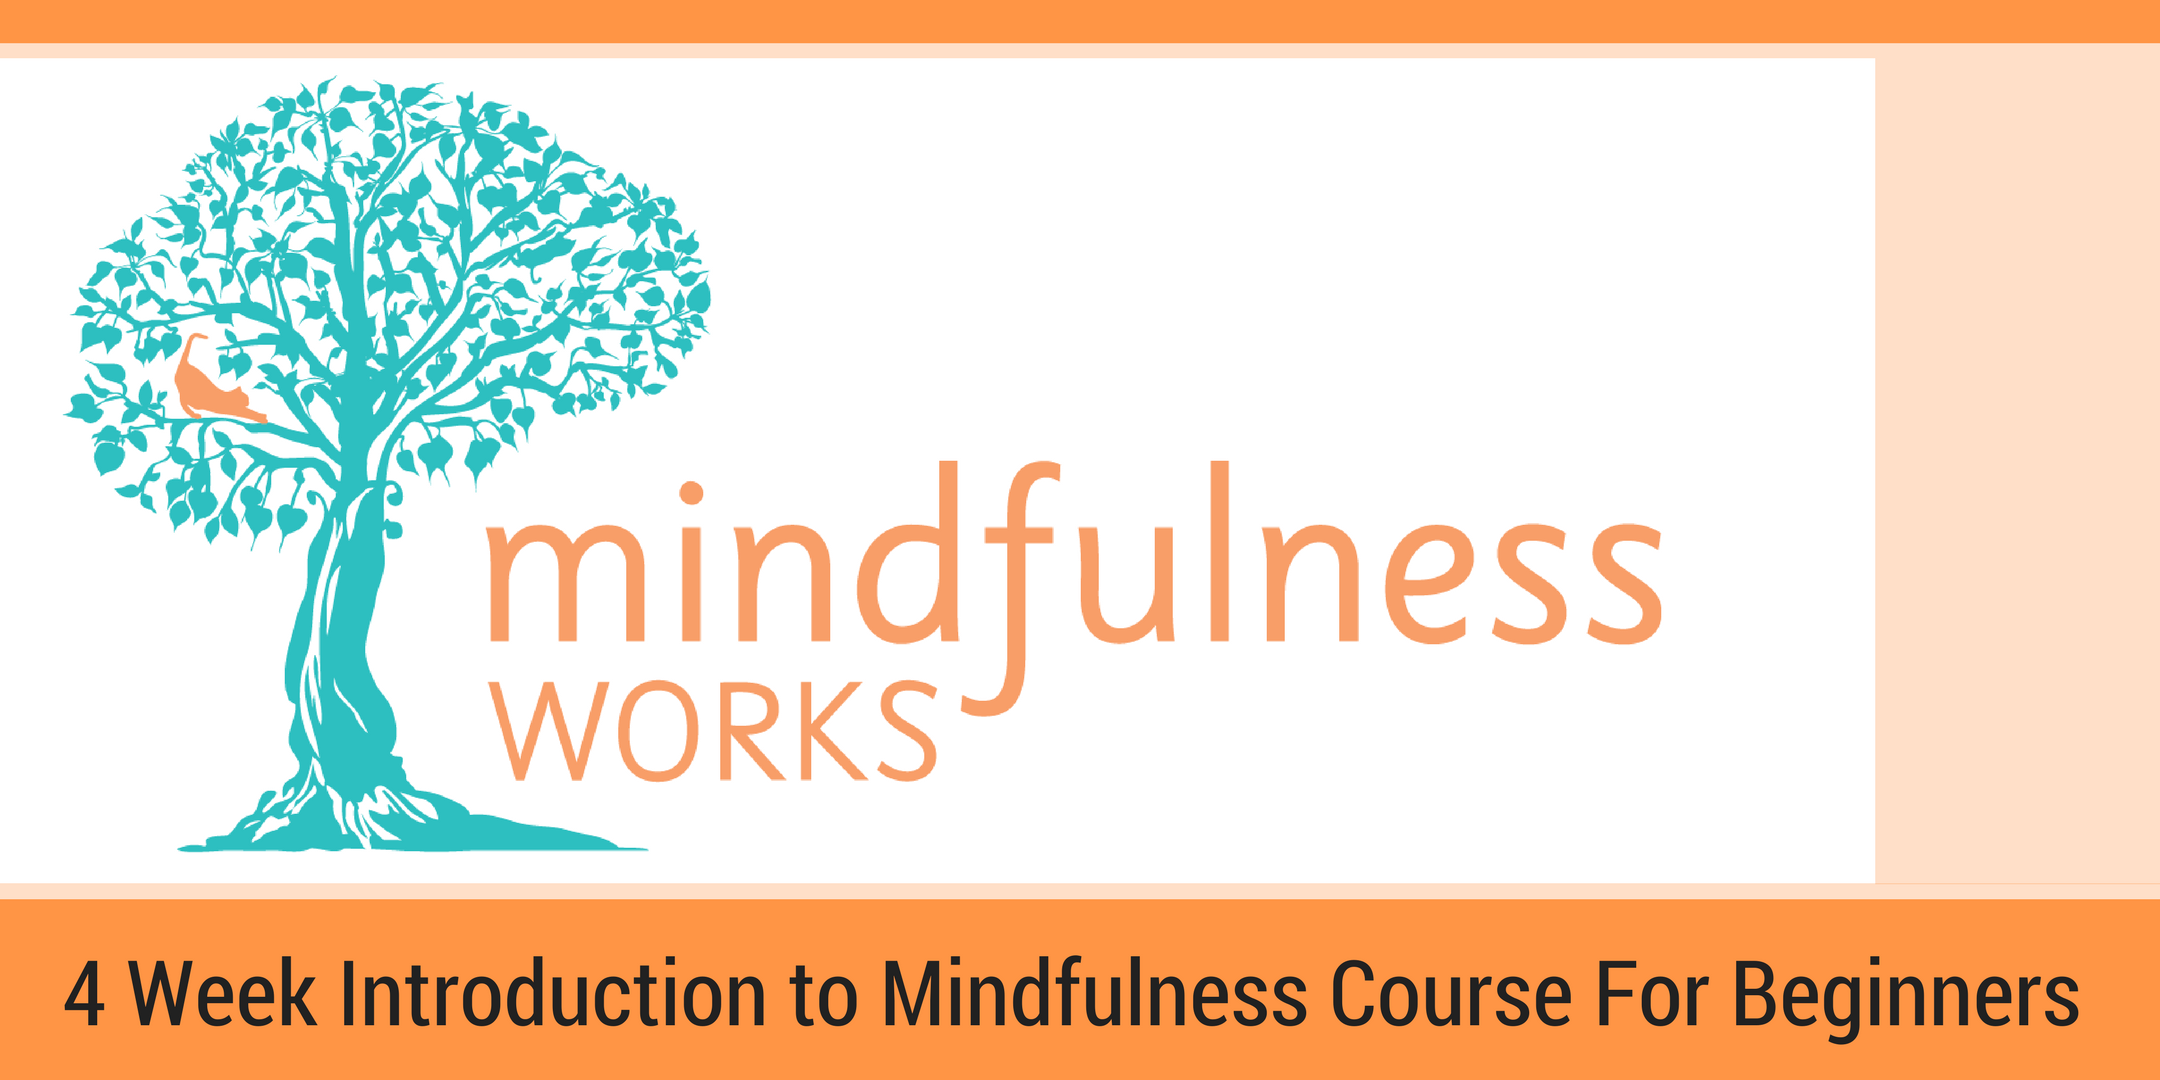 West Perth – An Introduction to Mindfulness & Meditation 4 Week Course